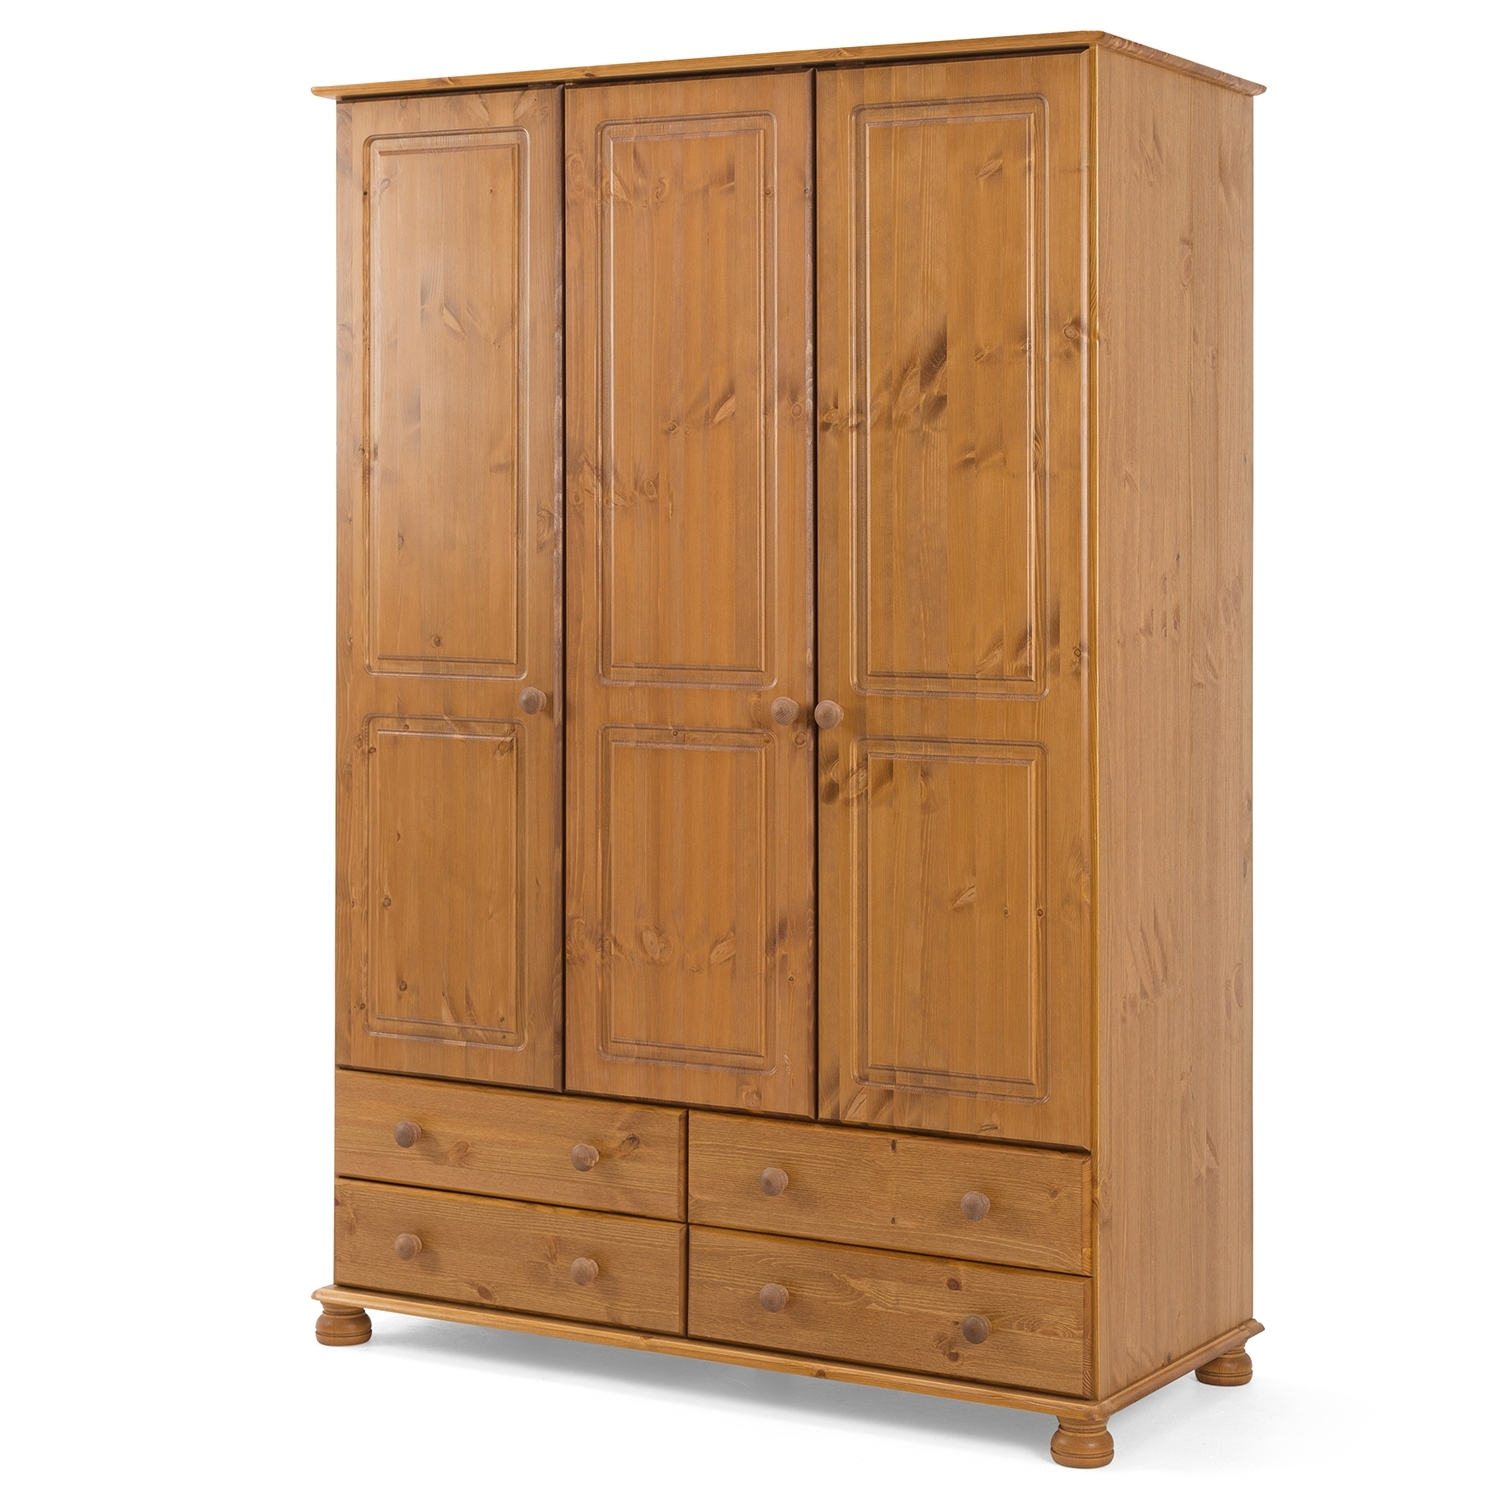 Best And Newest 3 Door Pine Wardrobes Pertaining To Steens Richmond 3 Door 4 Drawer Wardrobe In Pine – Next Day (View 2 of 15)